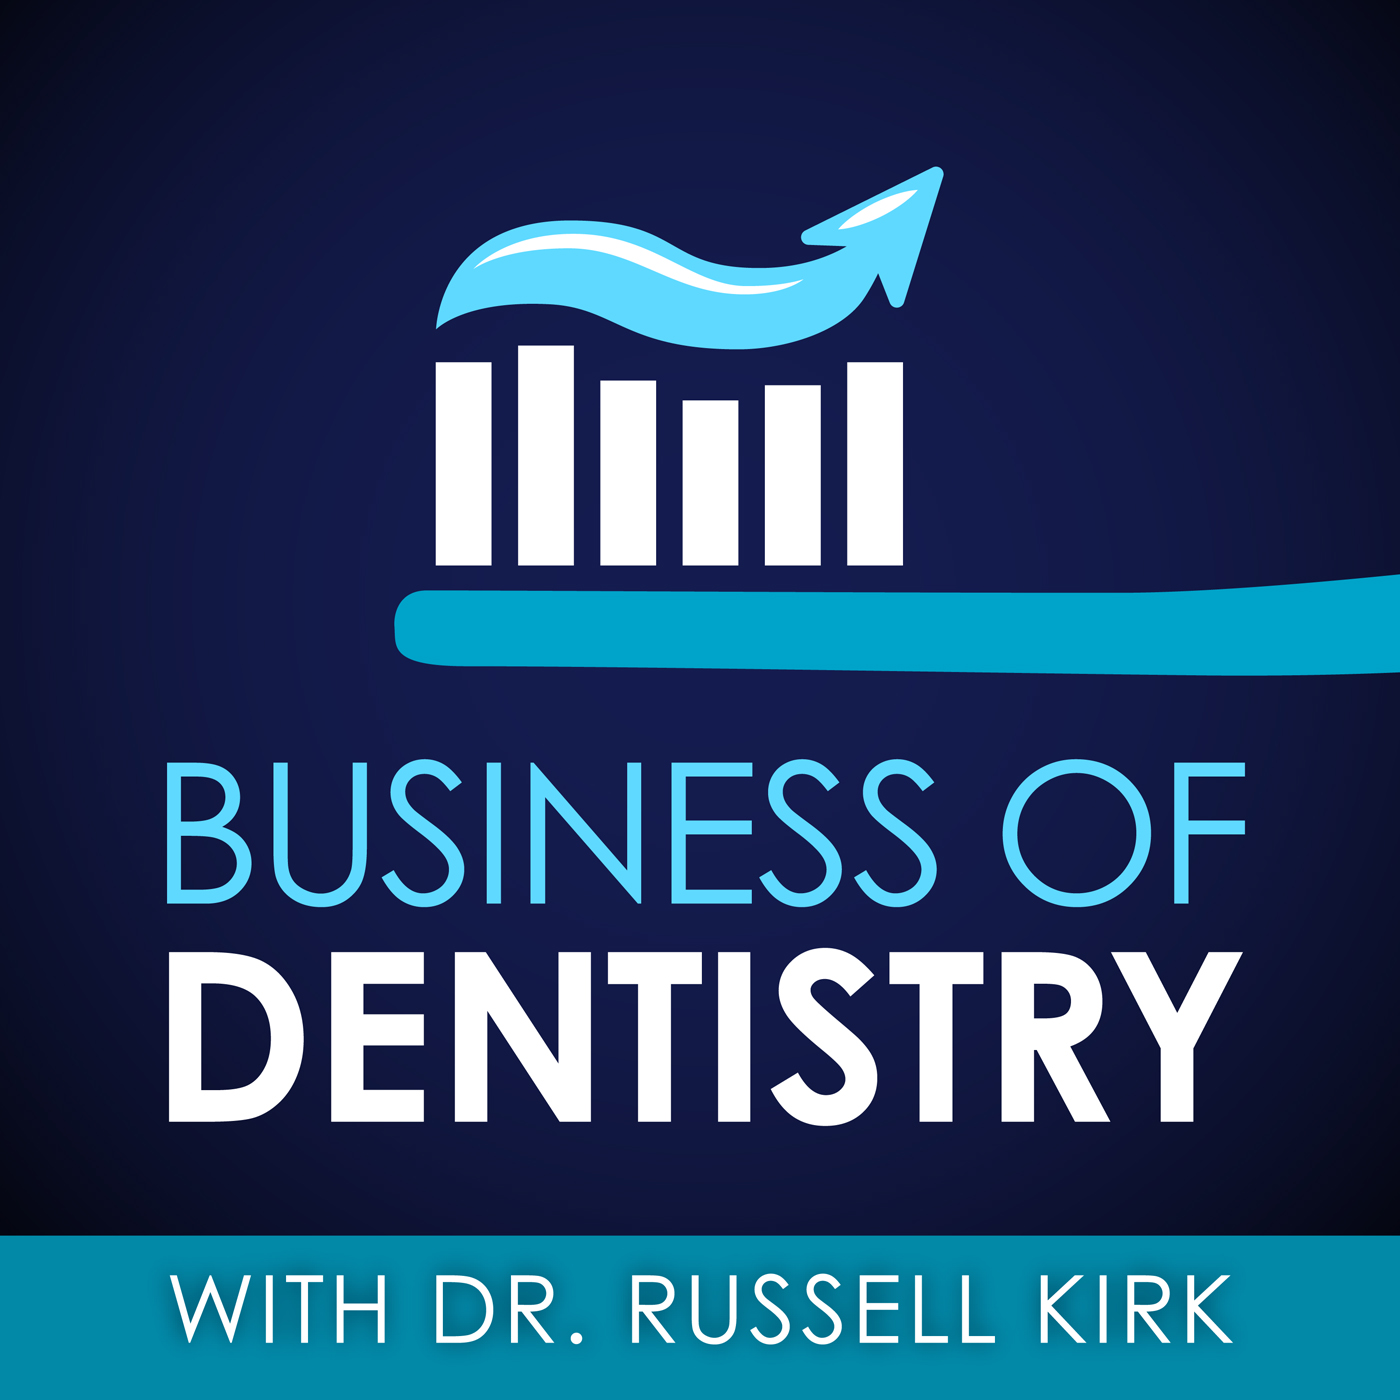 Business Of Dentistry Podcast